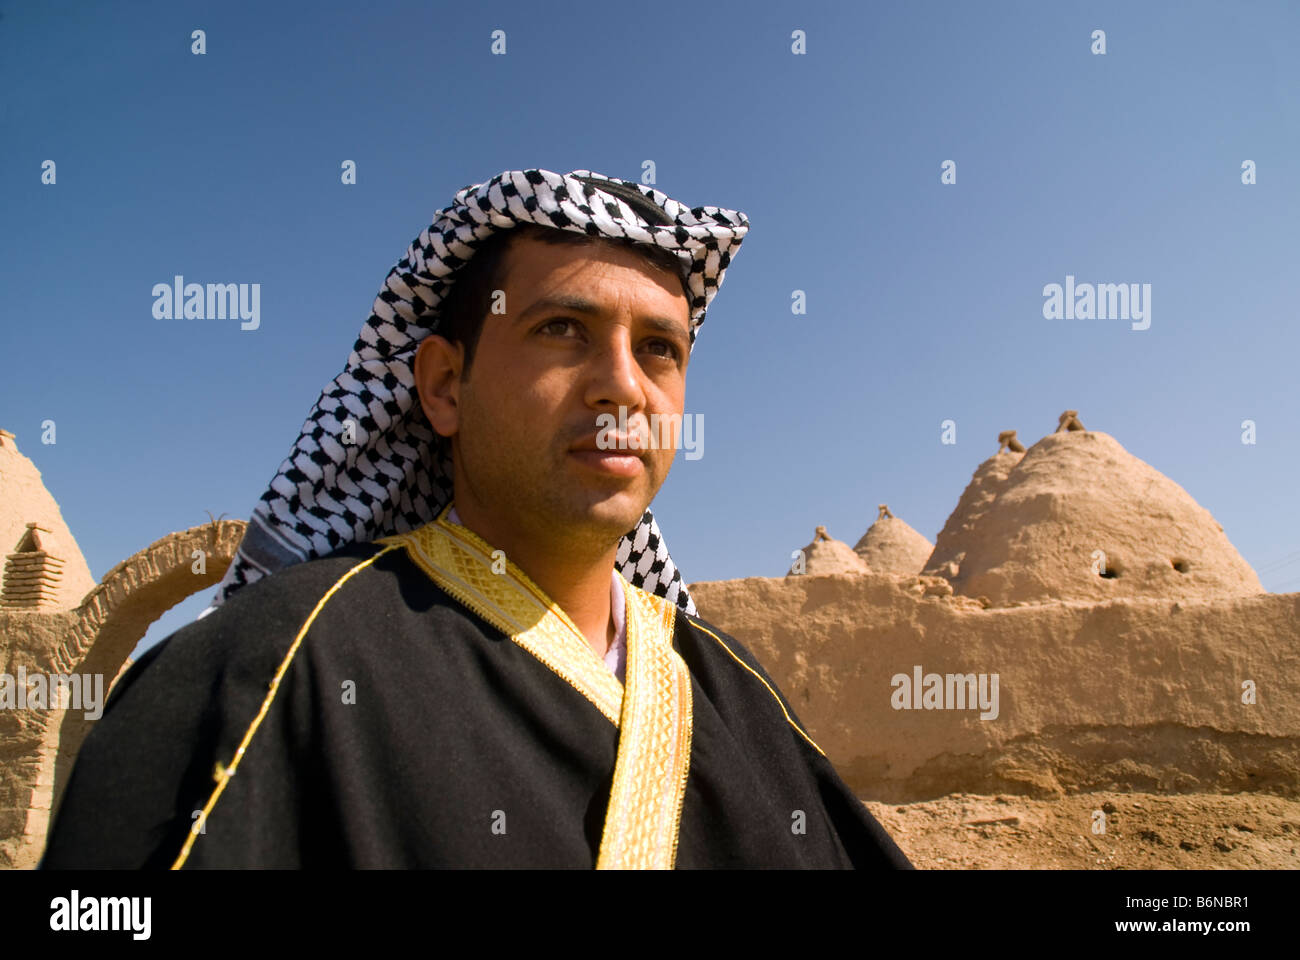 Arab Turk shopkeeper of Harran Culture House with mud brick beehive adobe houses - Stock Image